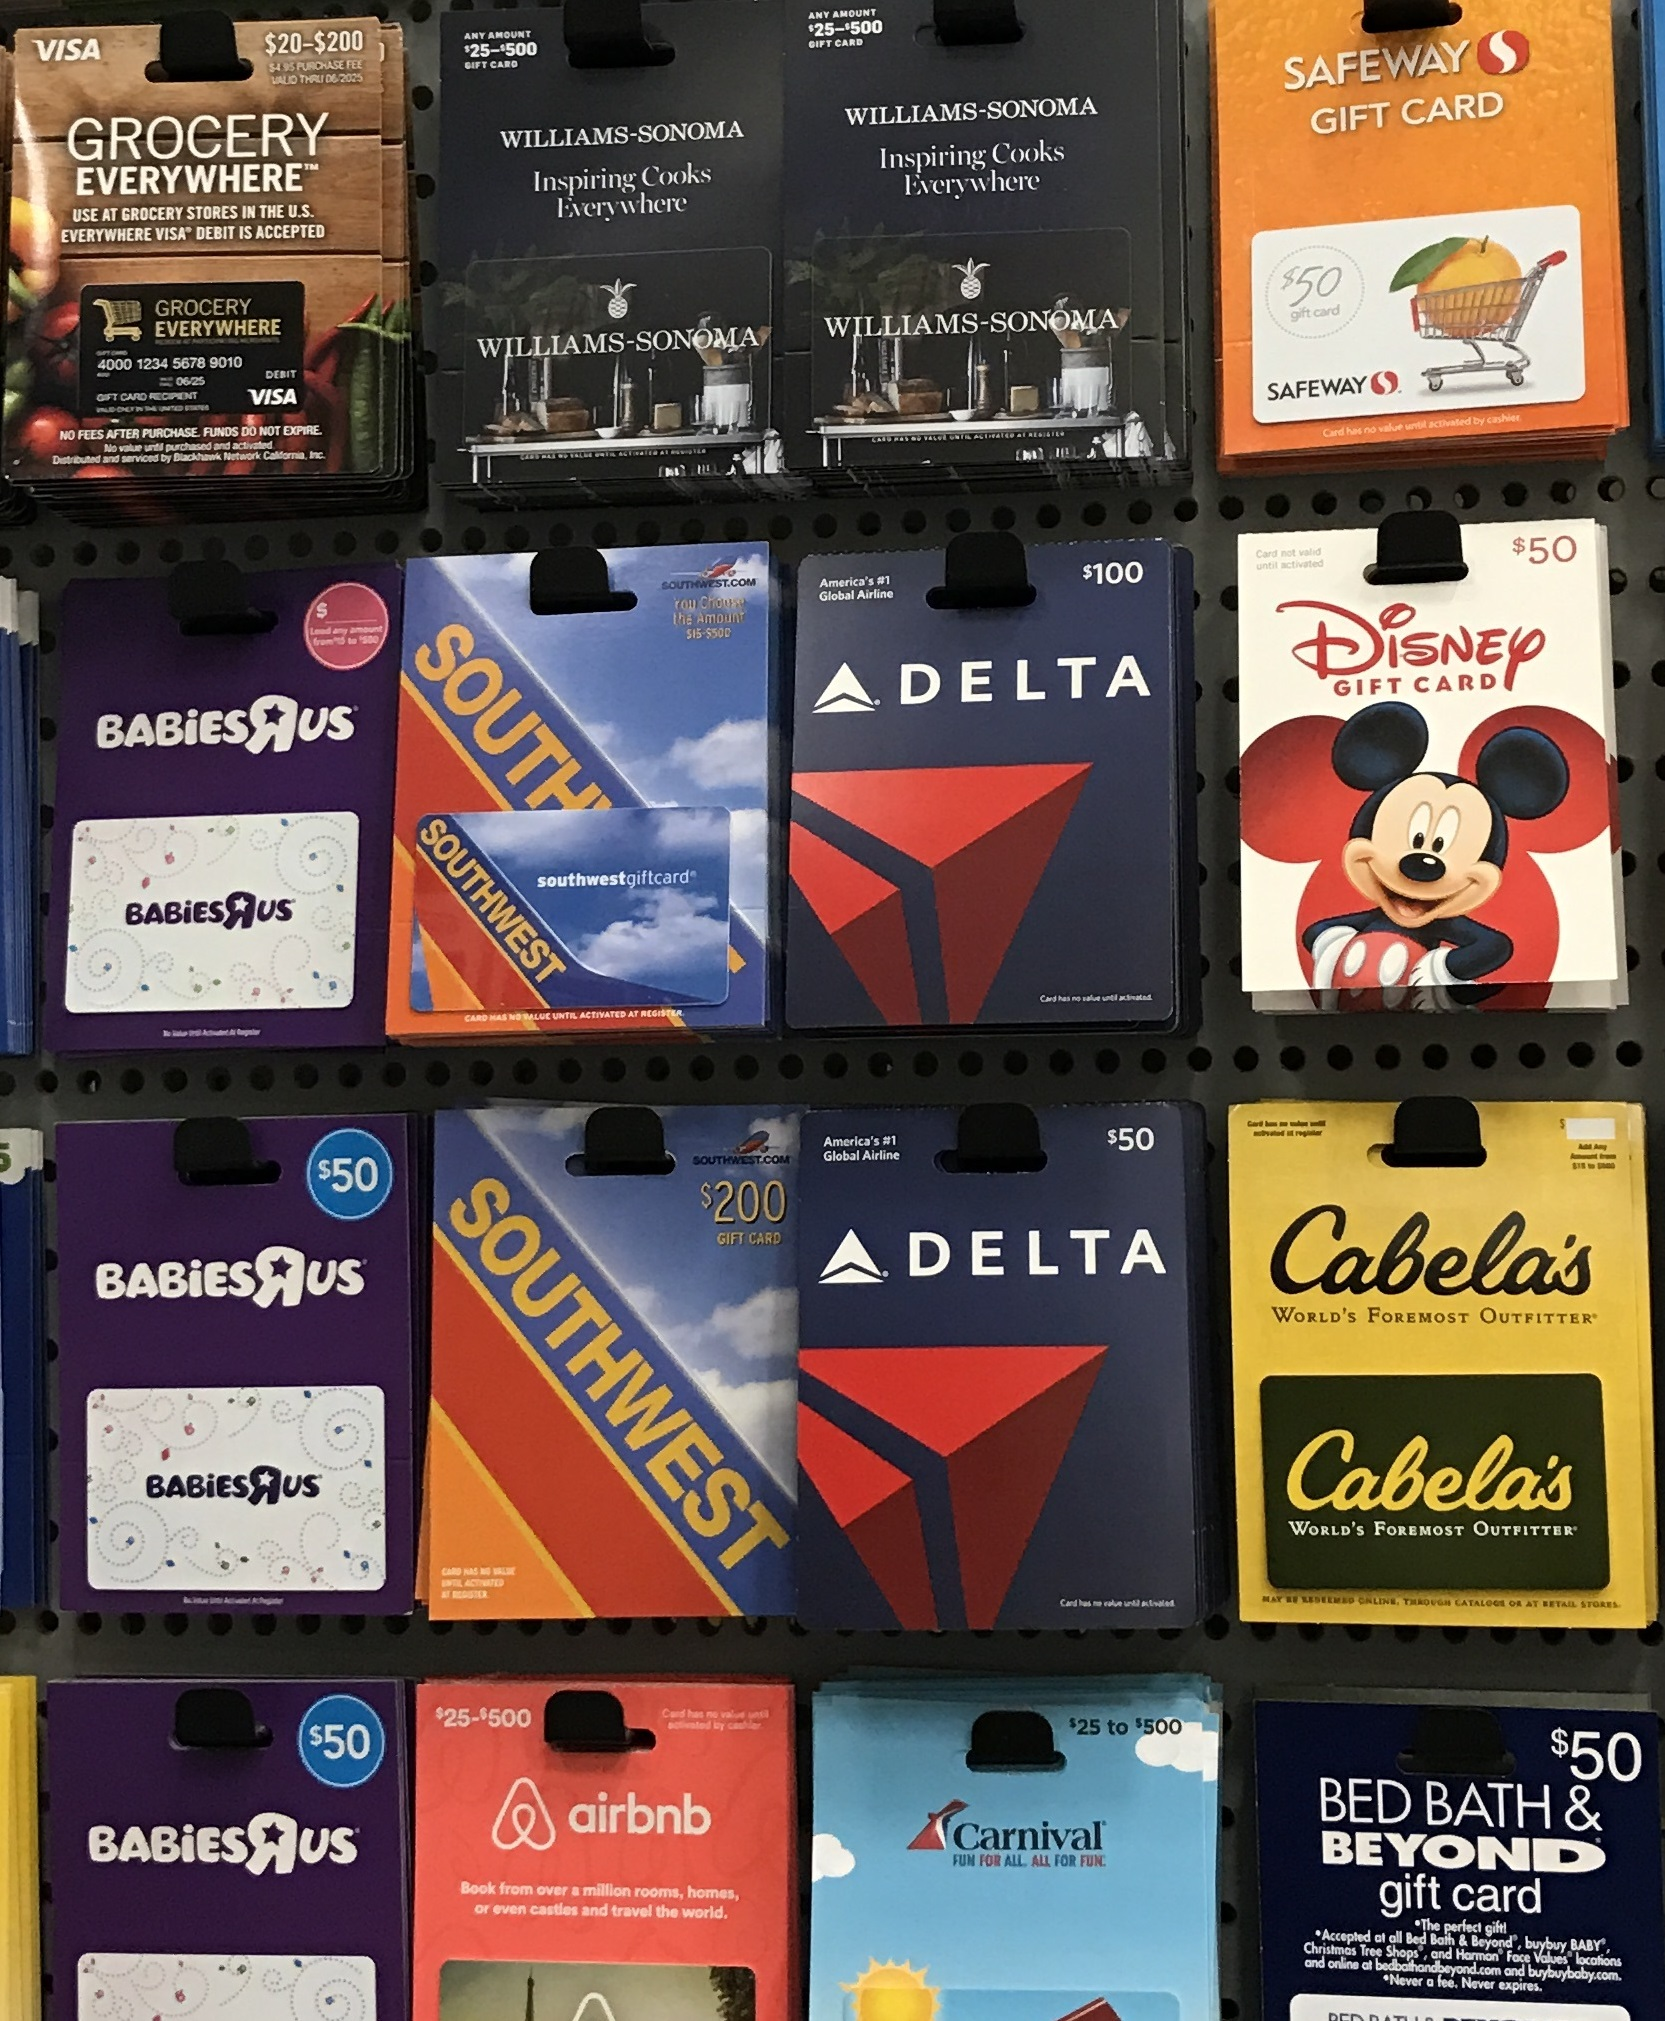 delta e gift card extreme stacking the lowe s amex offer 20 off amazon 4103